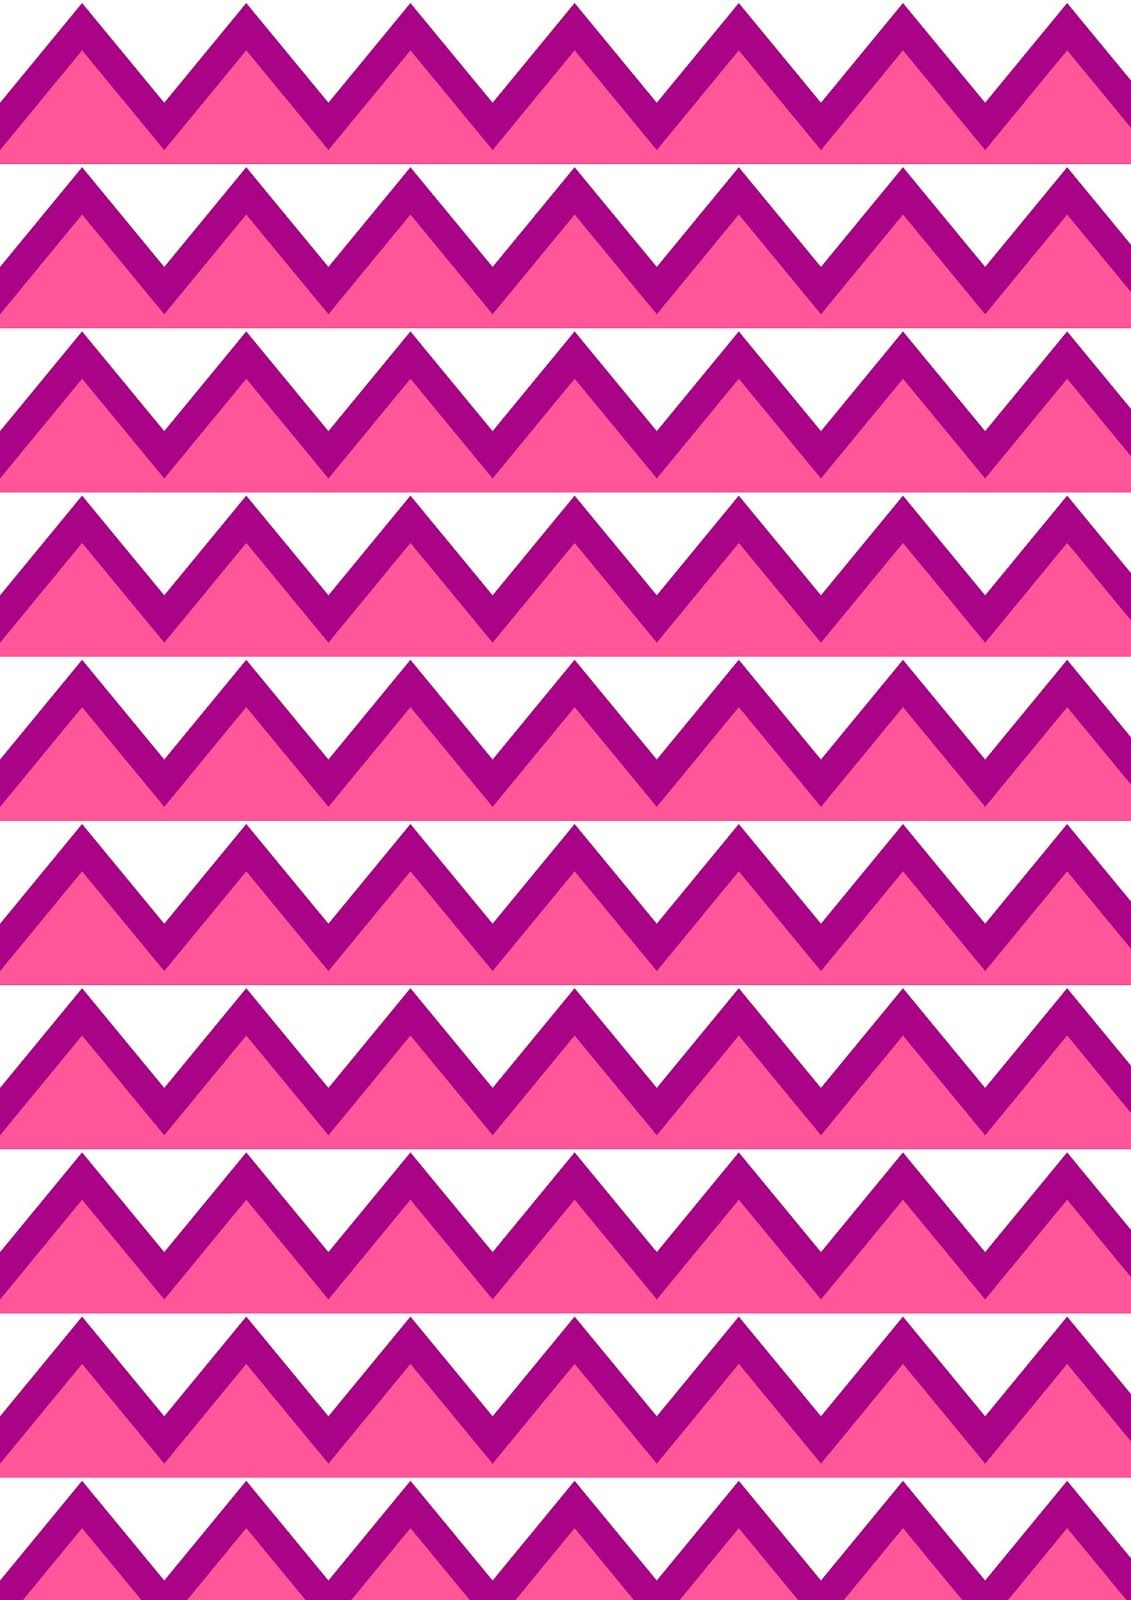 free printable chevron pattern paper - for gift wrapping and paper